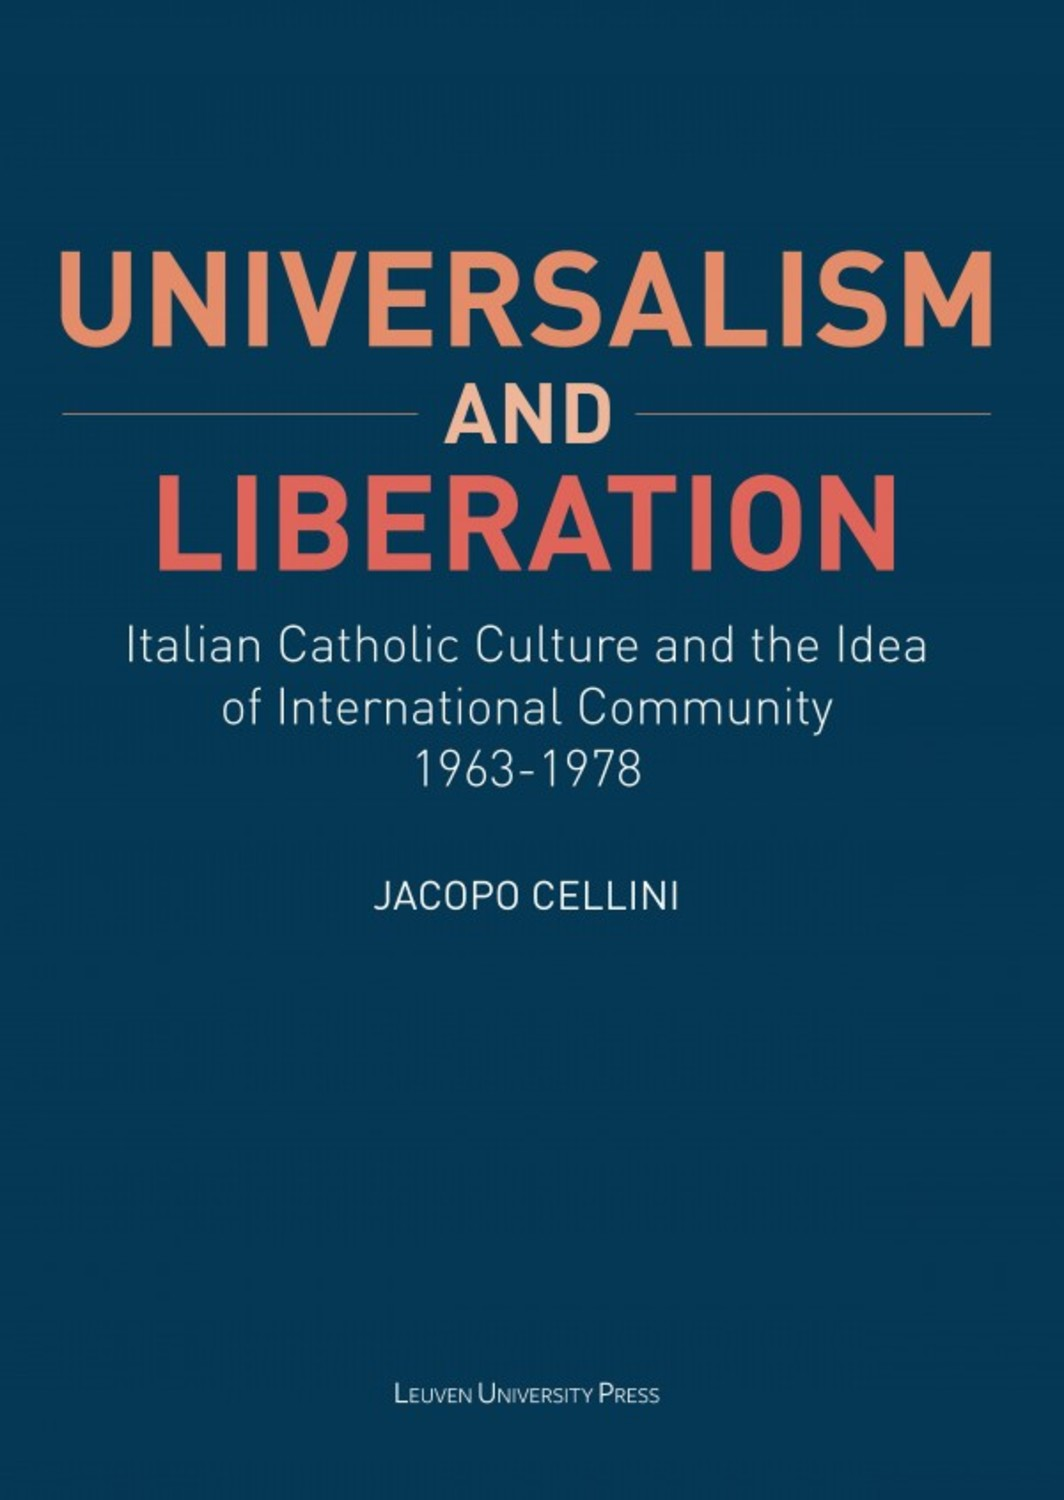 Universalism and Liberation